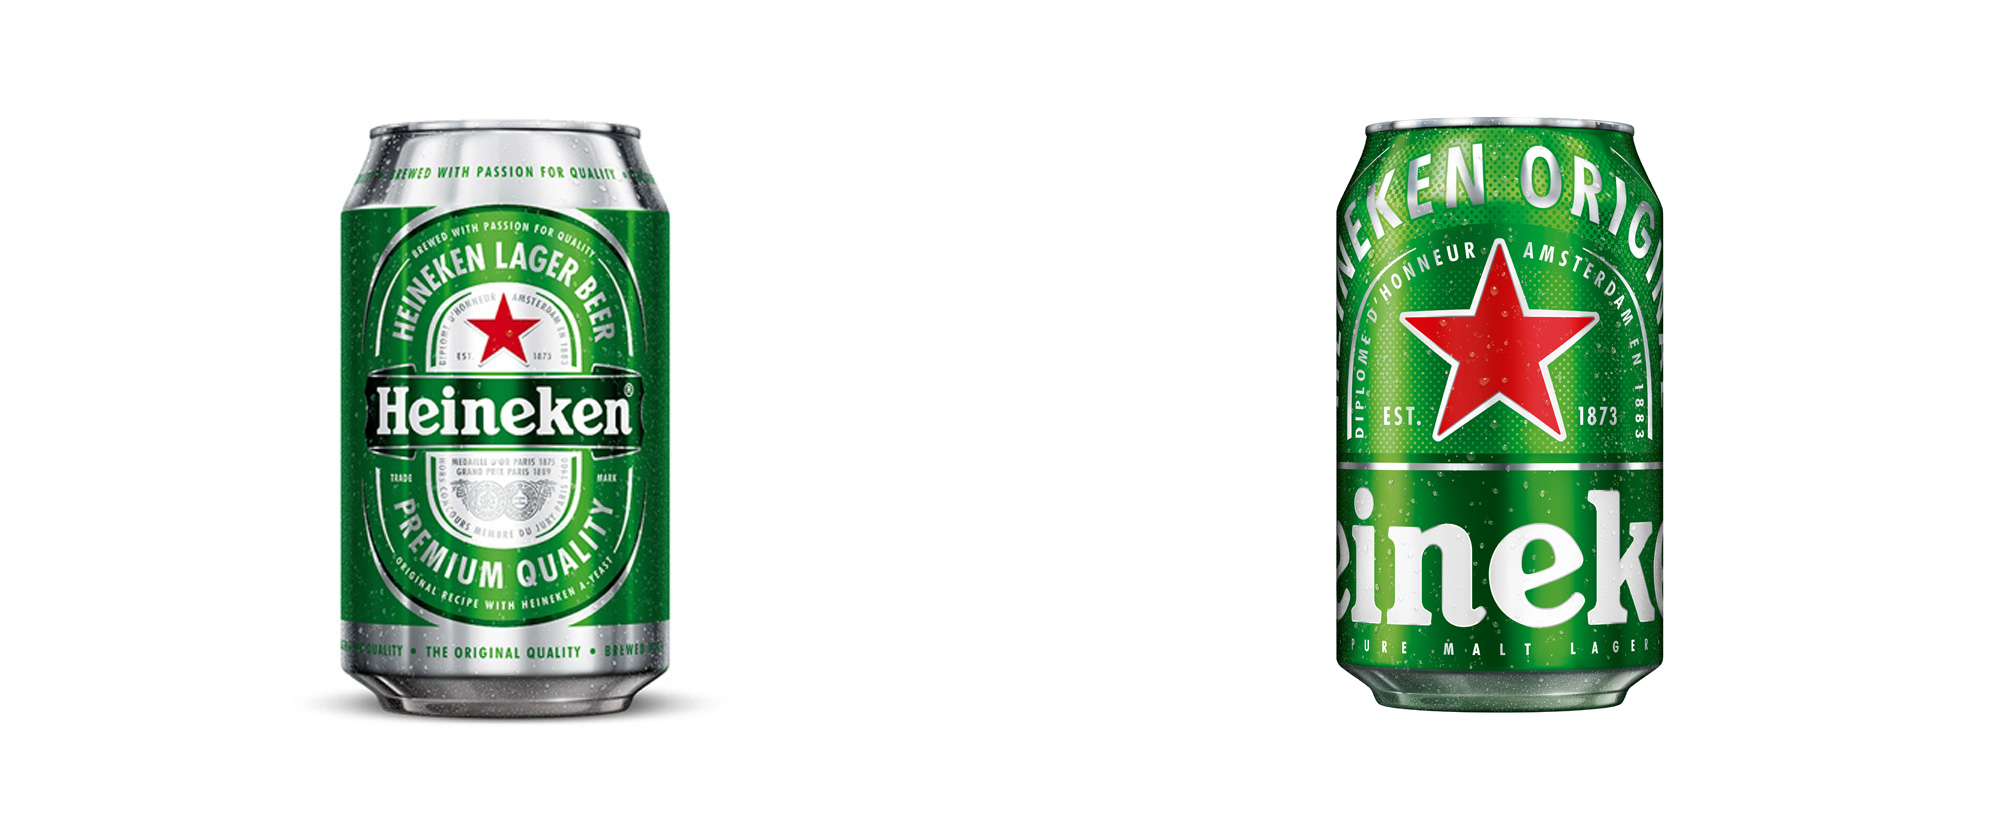 New Cans for Heineken by VBAT